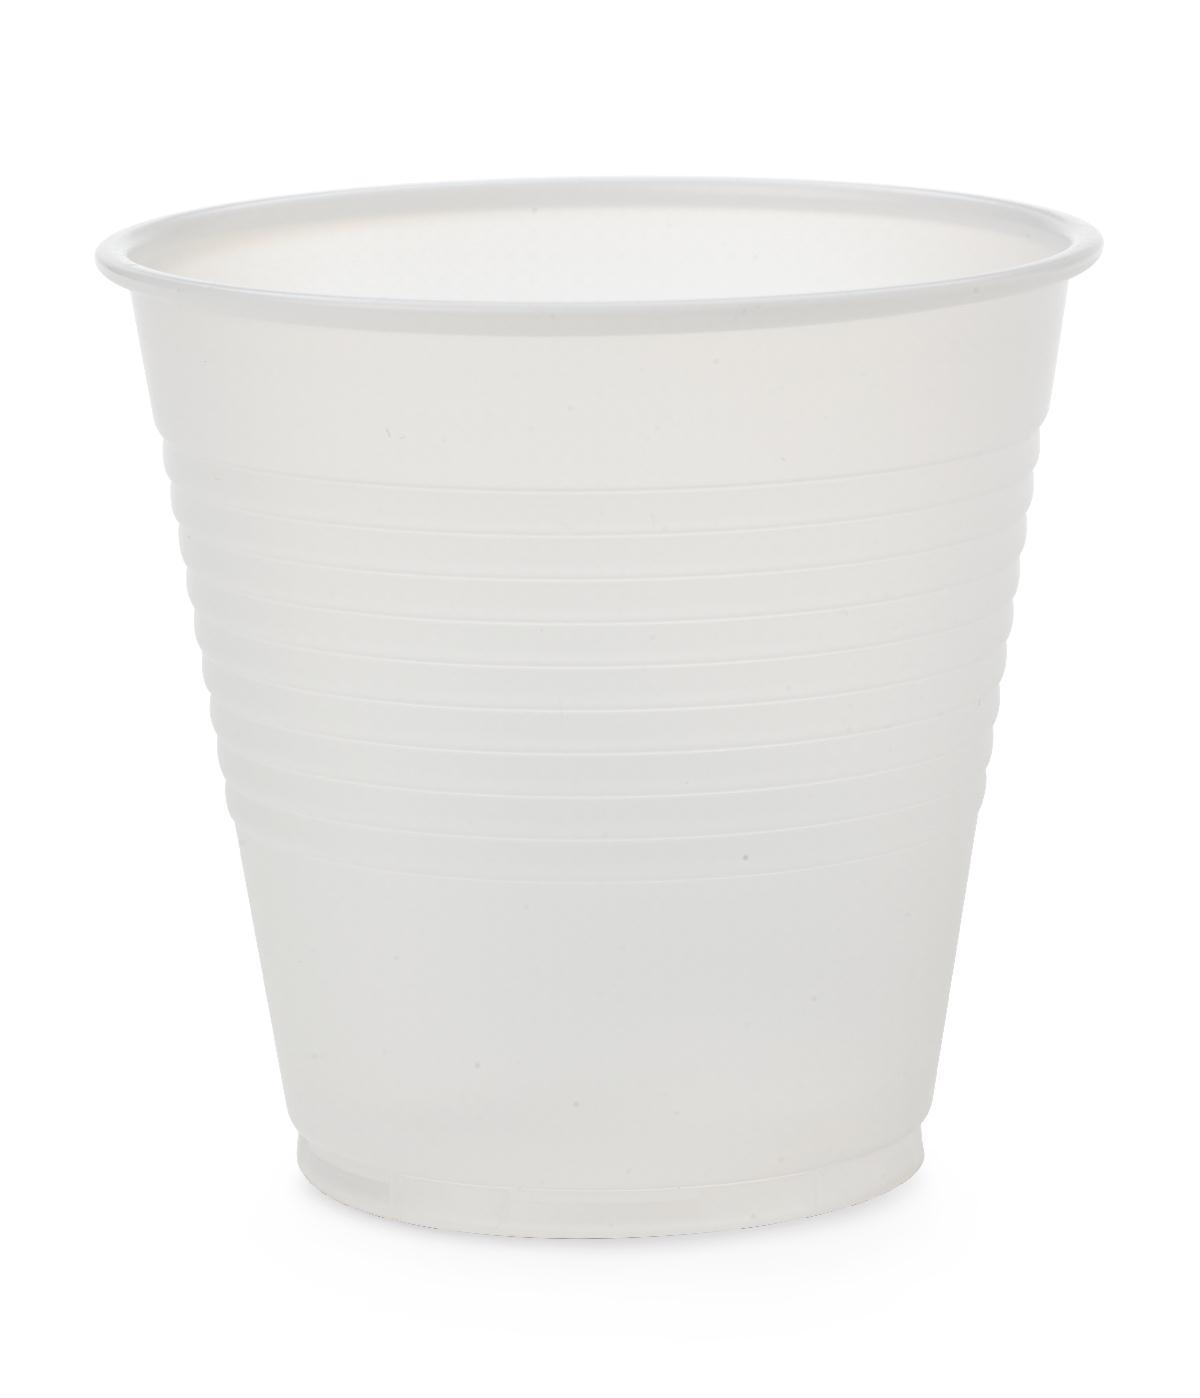 Cup Plastic 5 Oz Translucent - Non03005 - Food Service Drinking Cups Glasses NON03005